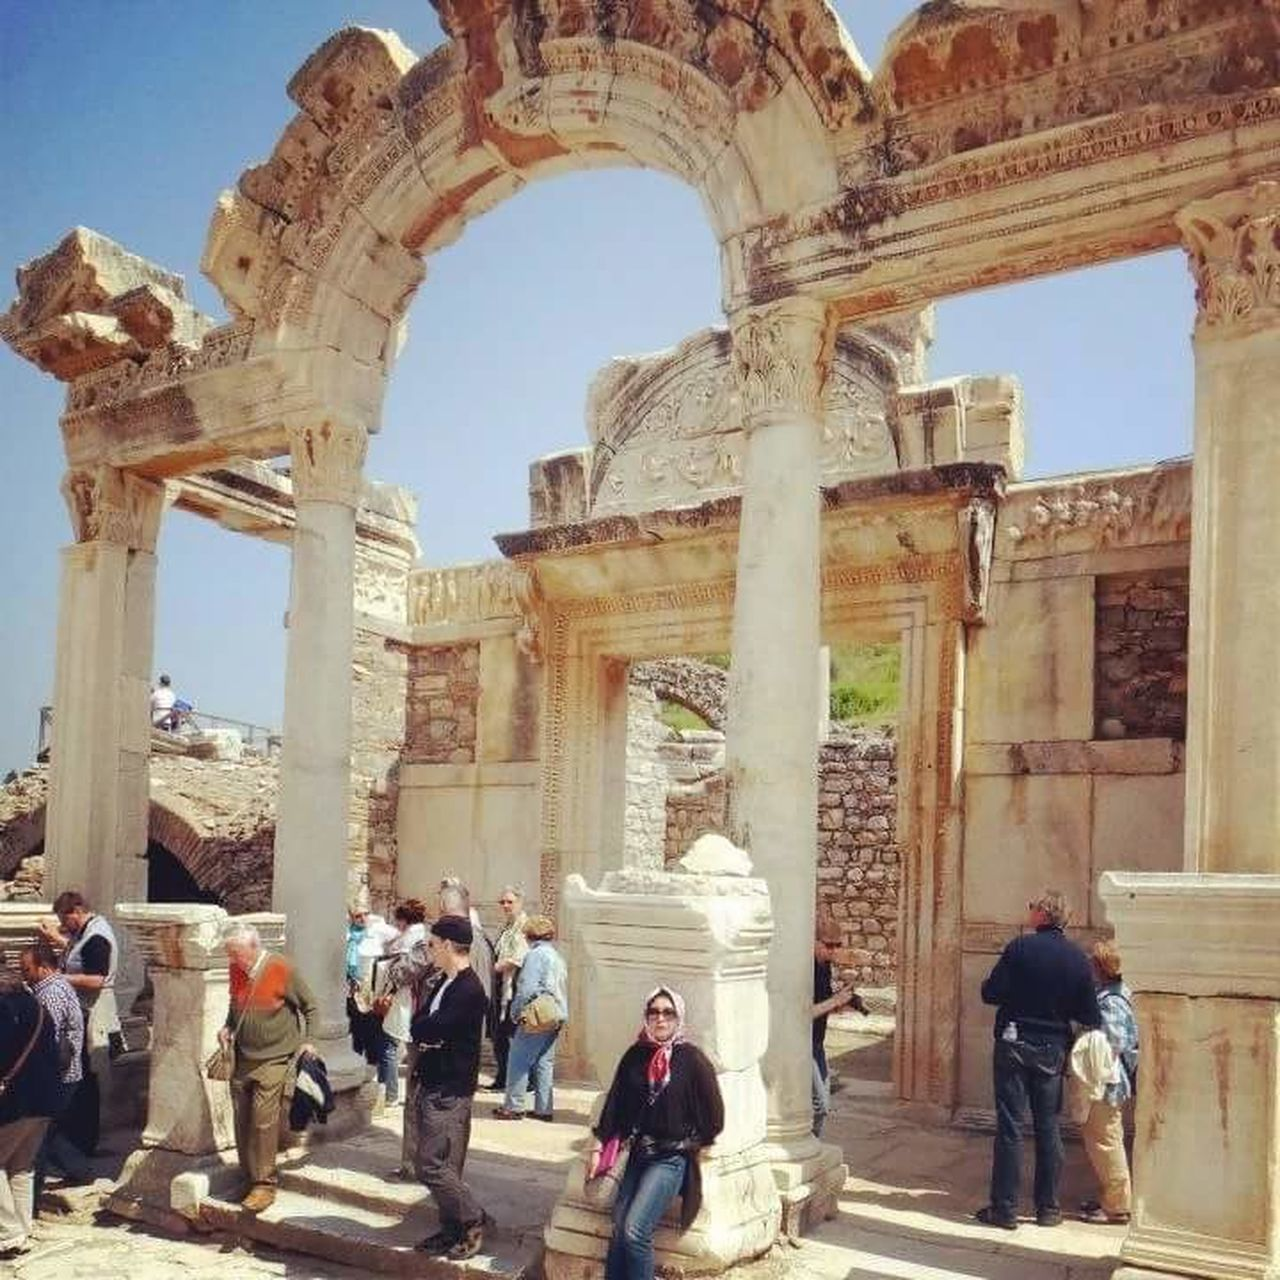 My Turkey Getaway - Eyeem Ephesus - Turkey Old City Building April 2013 Walking Tours Hello World That's Me Lizara ❤️ Travel Photography Historical Monuments